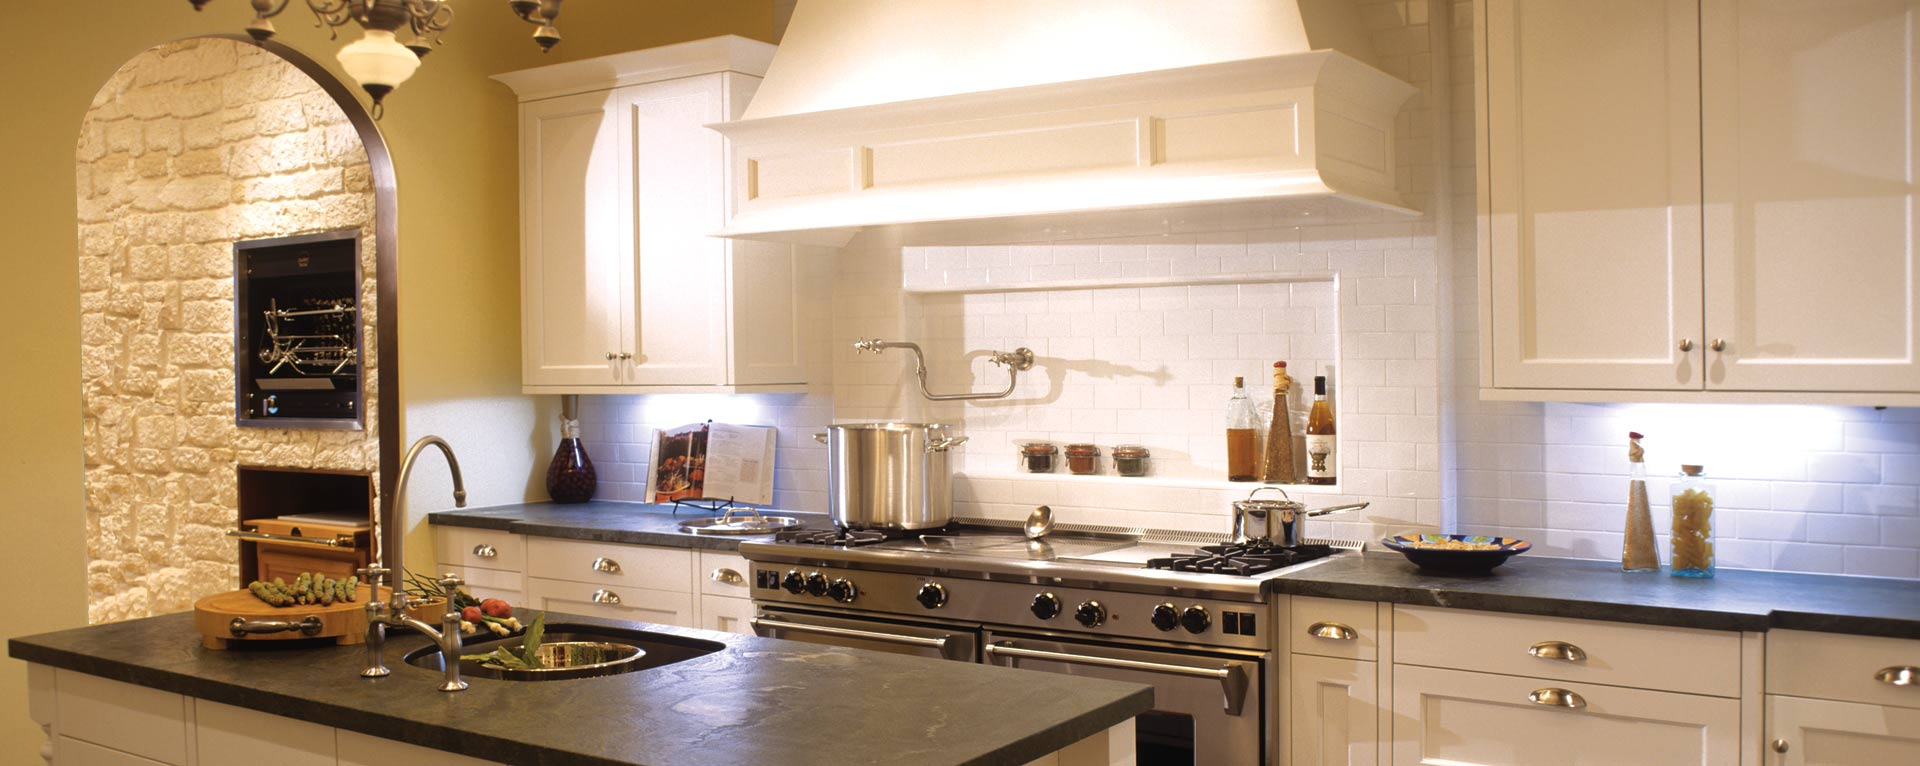 Home Artcraft Kitchens